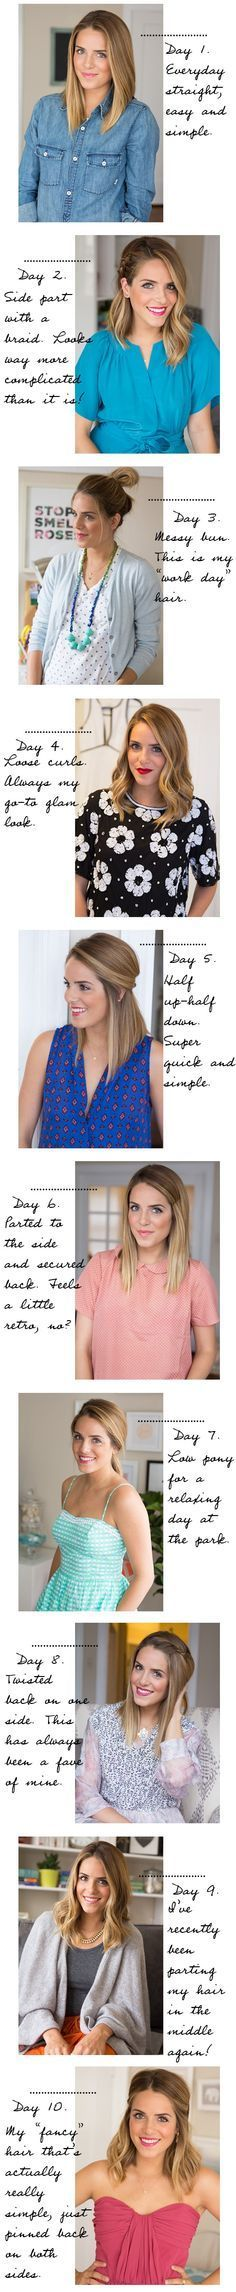 10 days of shoulder-length hair styles | Beauty Darling